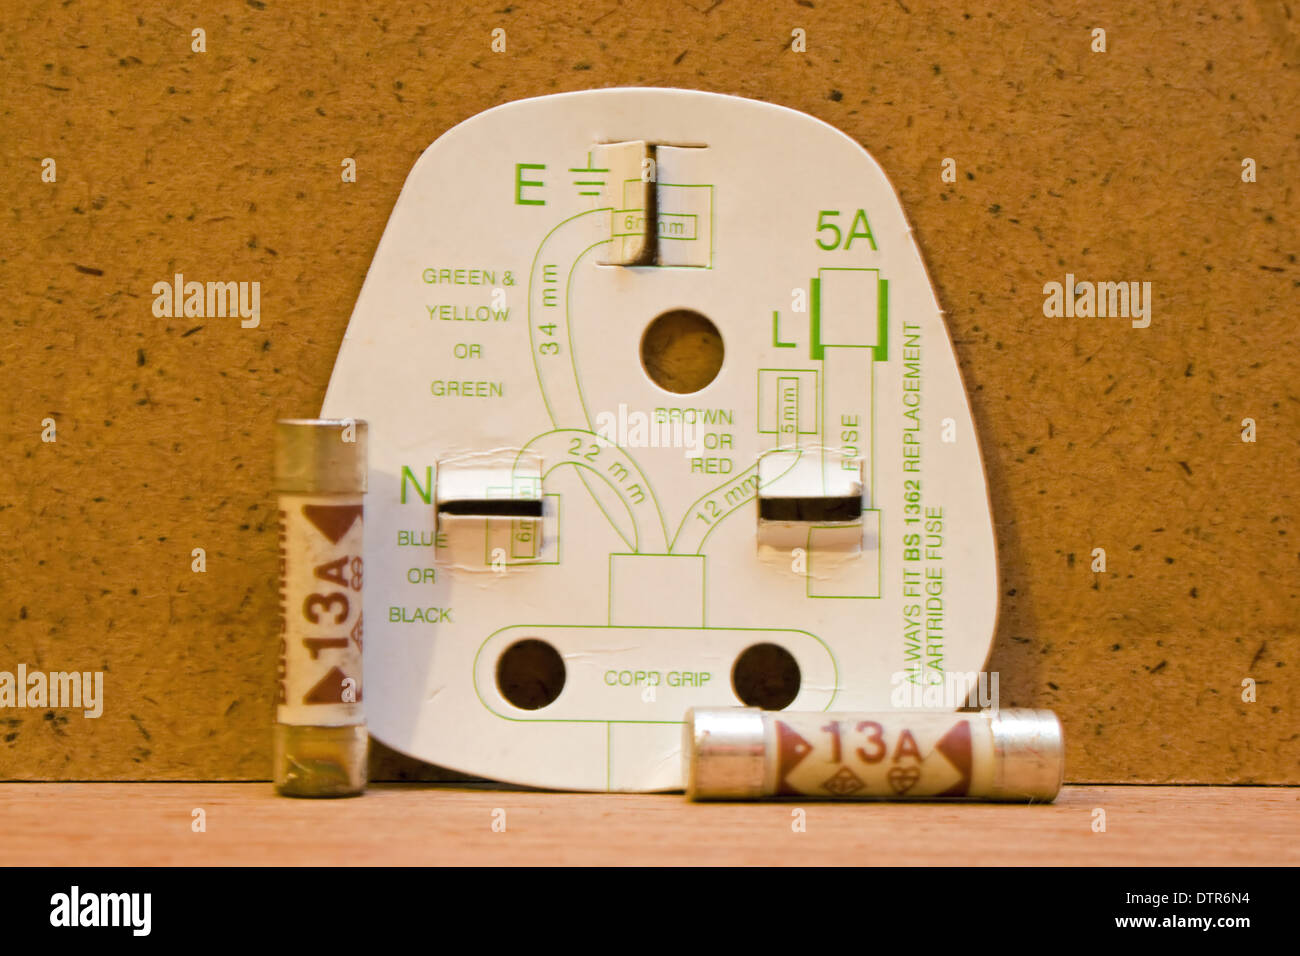 uk three pin plug wiring diagram with 13amp fuses DTR6N4 uk three pin plug wiring diagram with 13amp fuses stock photo 7 pin wiring diagram at readyjetset.co